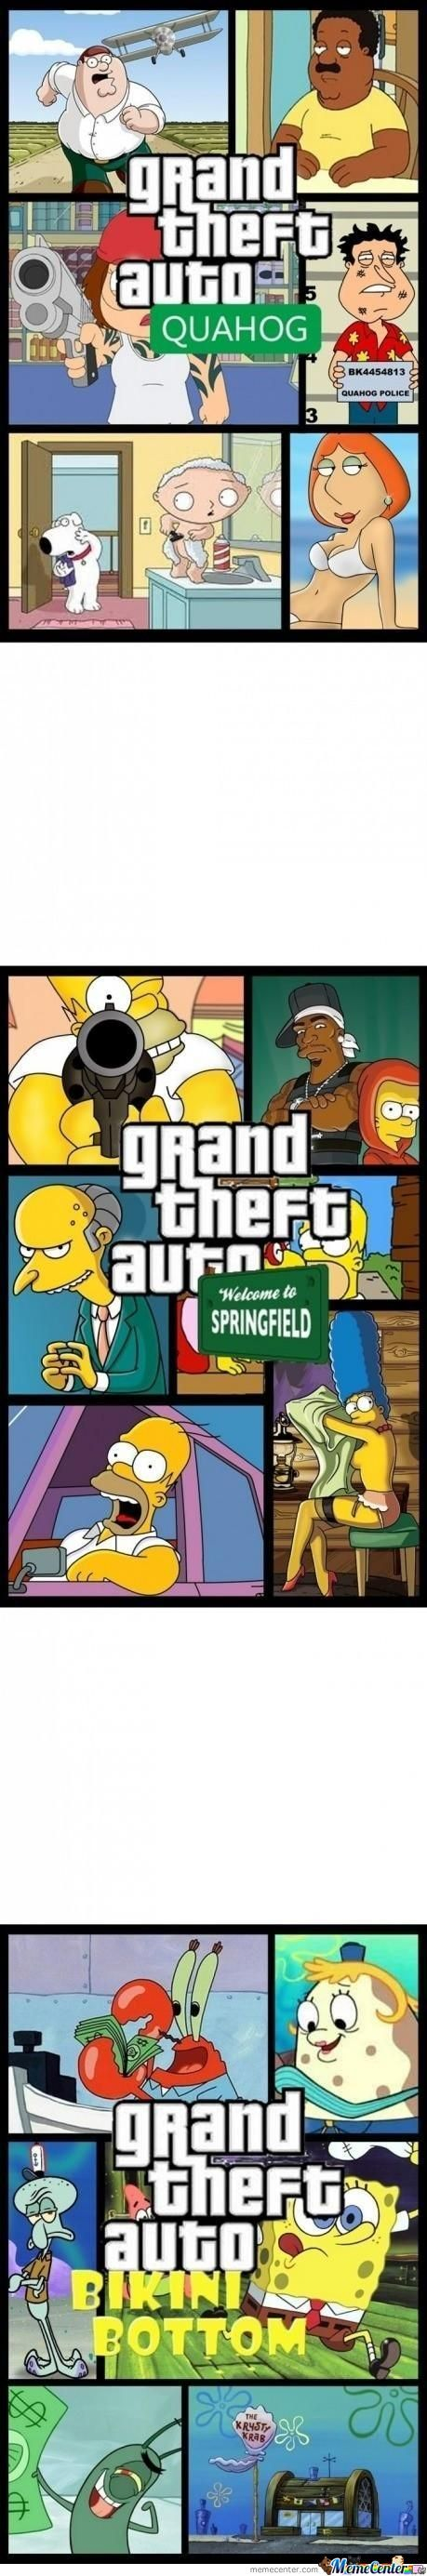 Next Gen Of Gta